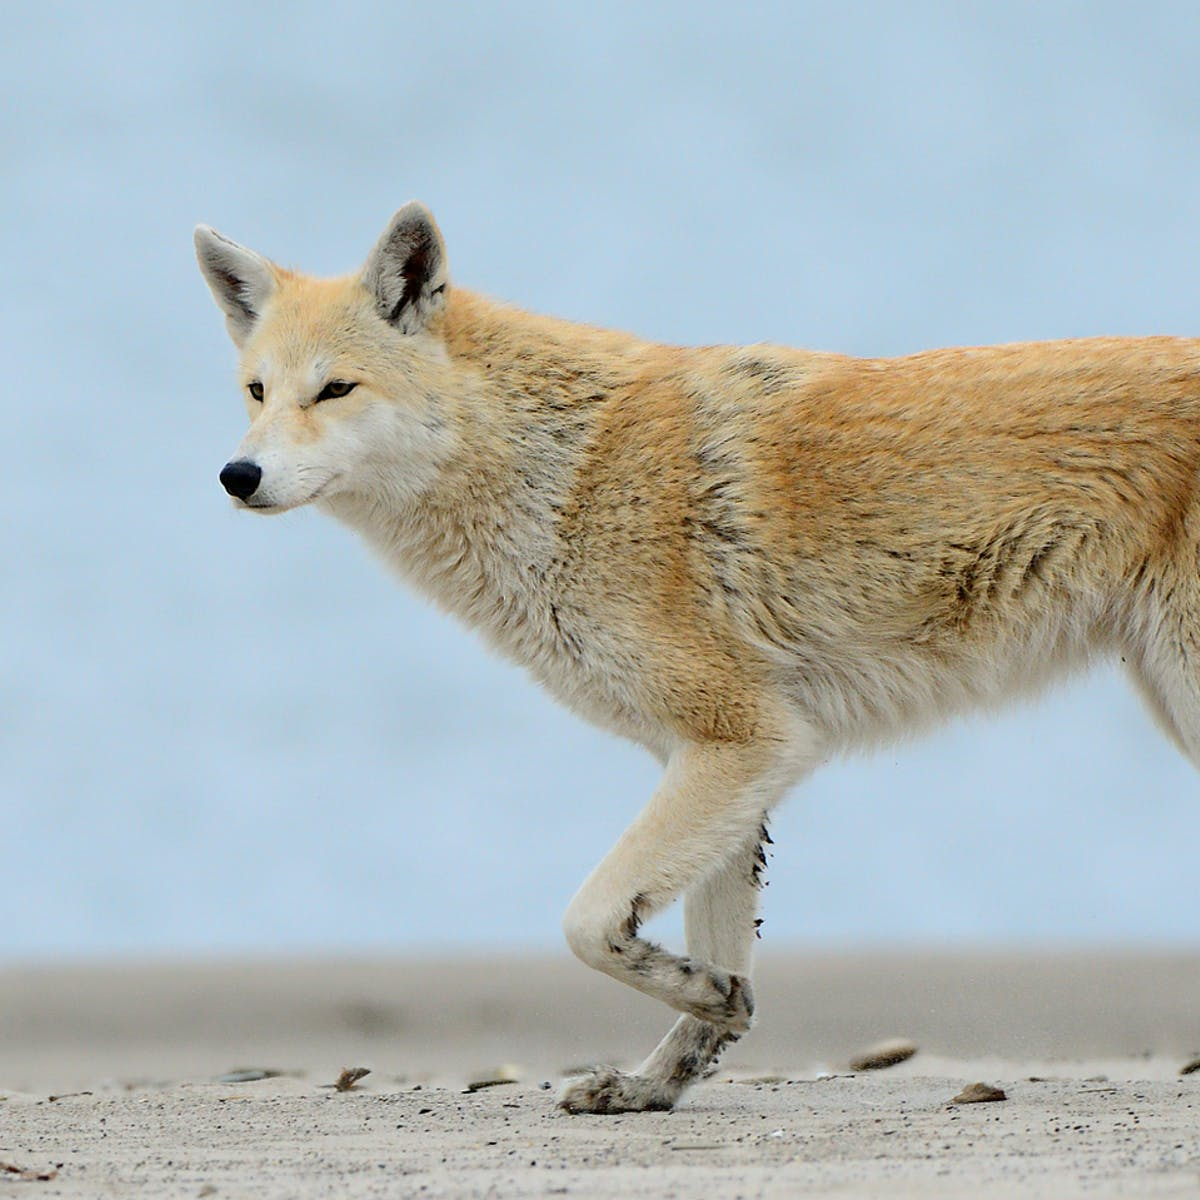 Yes, eastern coyotes are hybrids, but the 'coywolf' is not a